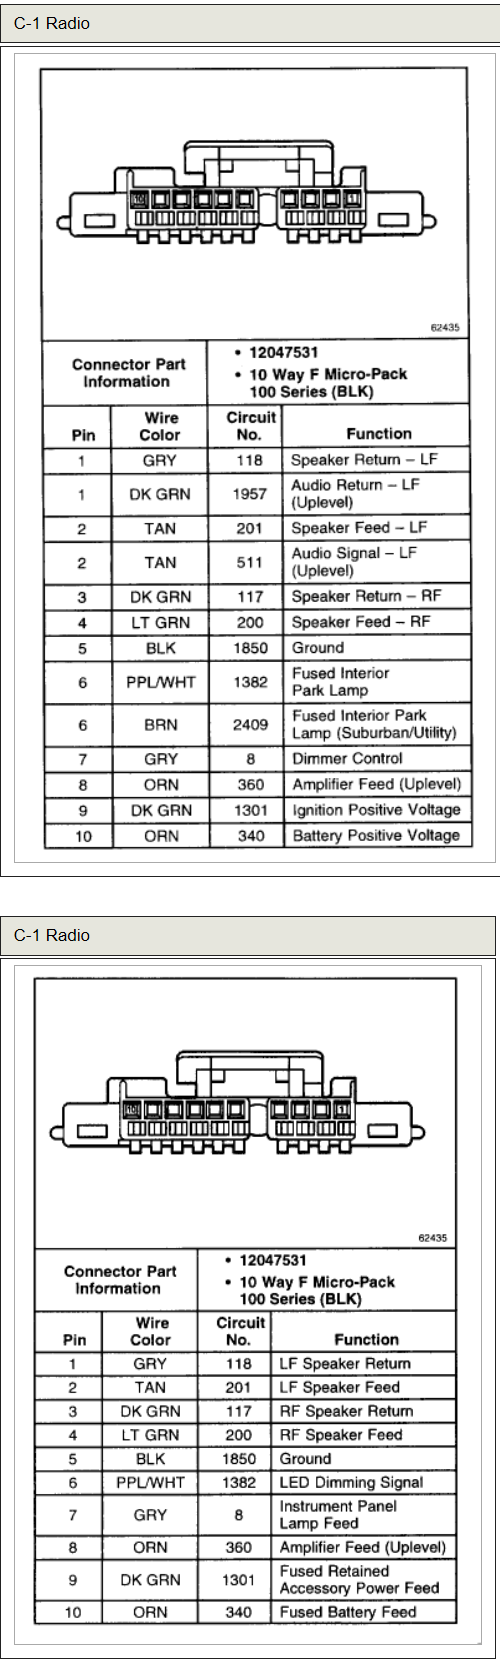 2006 tahoe wiring diagram 20 unique 1999 chevy    tahoe    radio    wiring       diagram     20 unique 1999 chevy    tahoe    radio    wiring       diagram